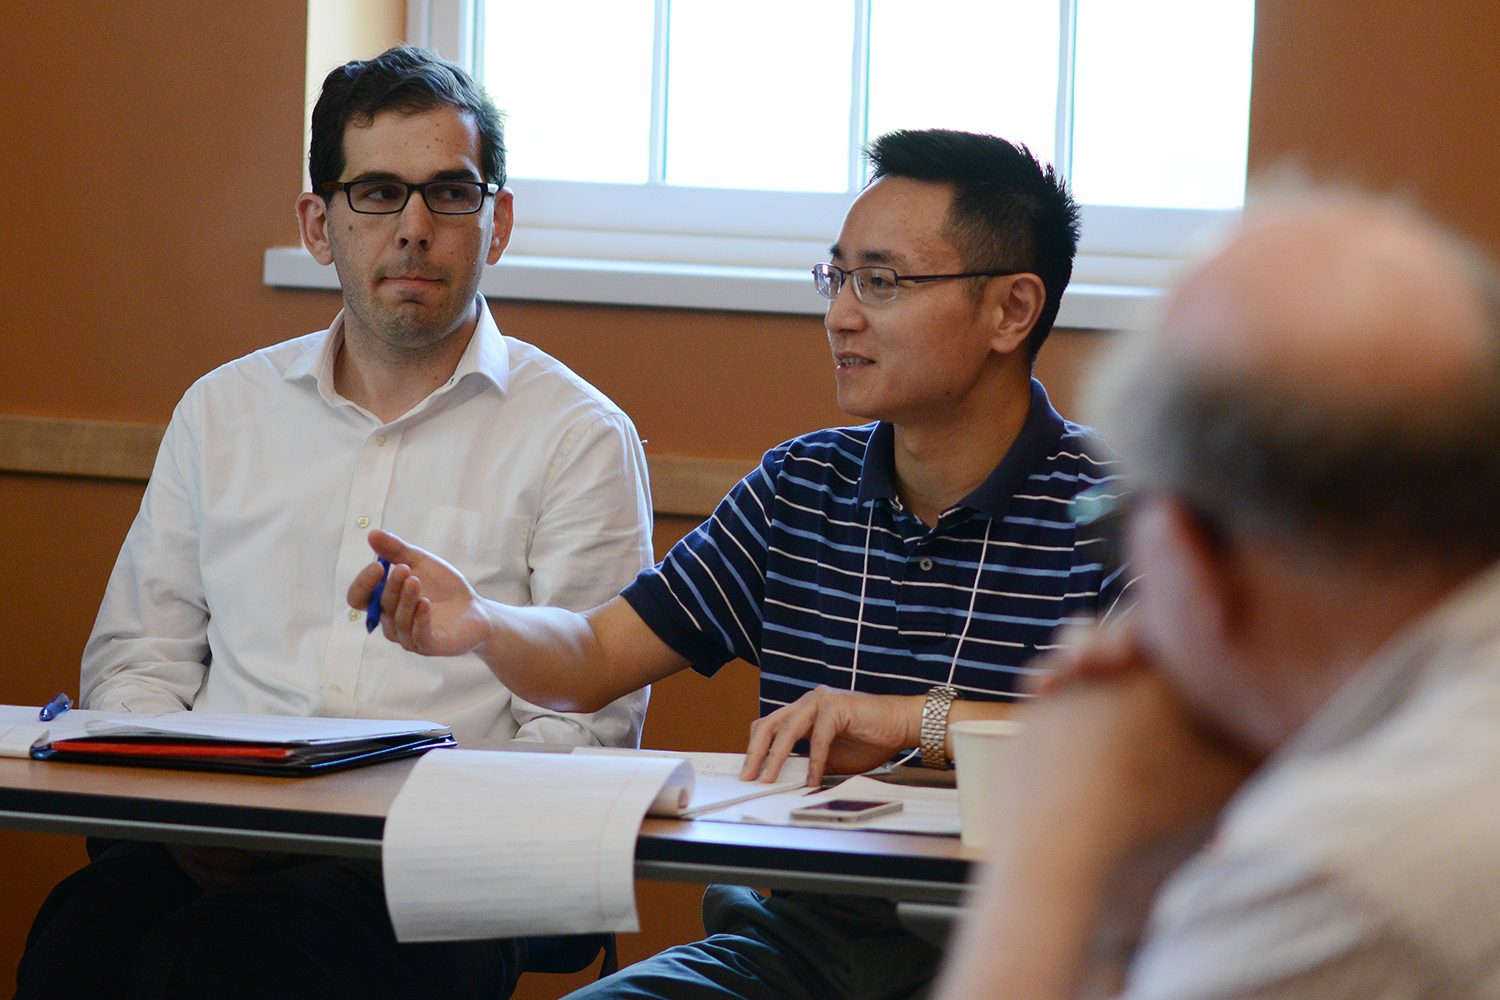 "Liang Ding, professor of international finance and financial markets at Macalester, led a session on ""Teaching Our Research."" Ding asked conference participants to elaborate on ways they integrate their research into teaching and how to teach finance in a liberal arts setting. Ding's research focuses on the impact of market structure and market participants' behavior on asset prices in financial markets."